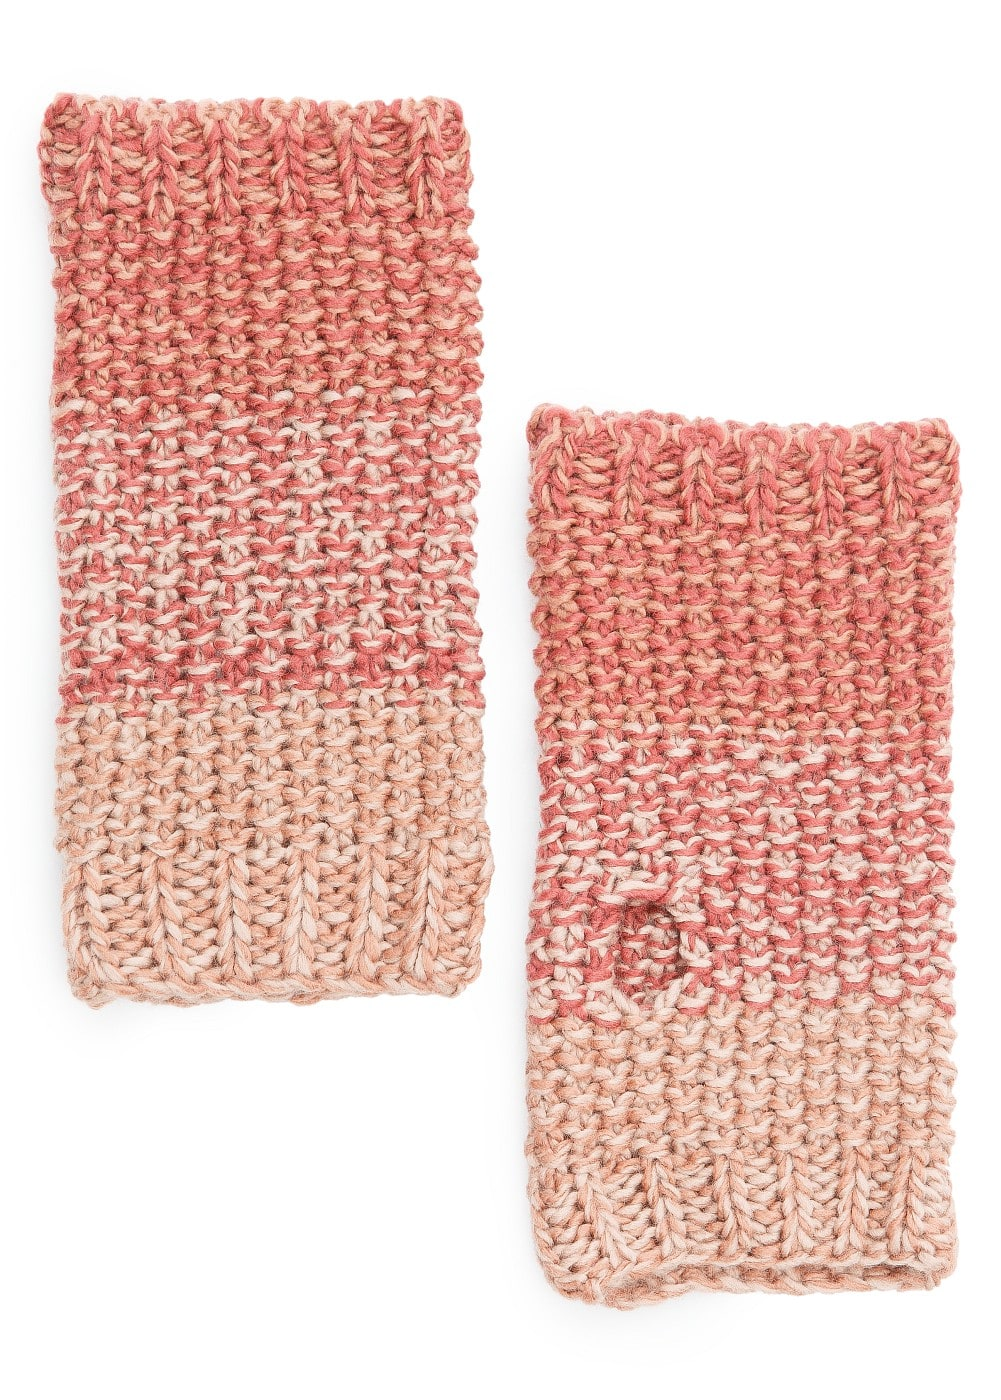 Ombré reverse knit fingerless gloves